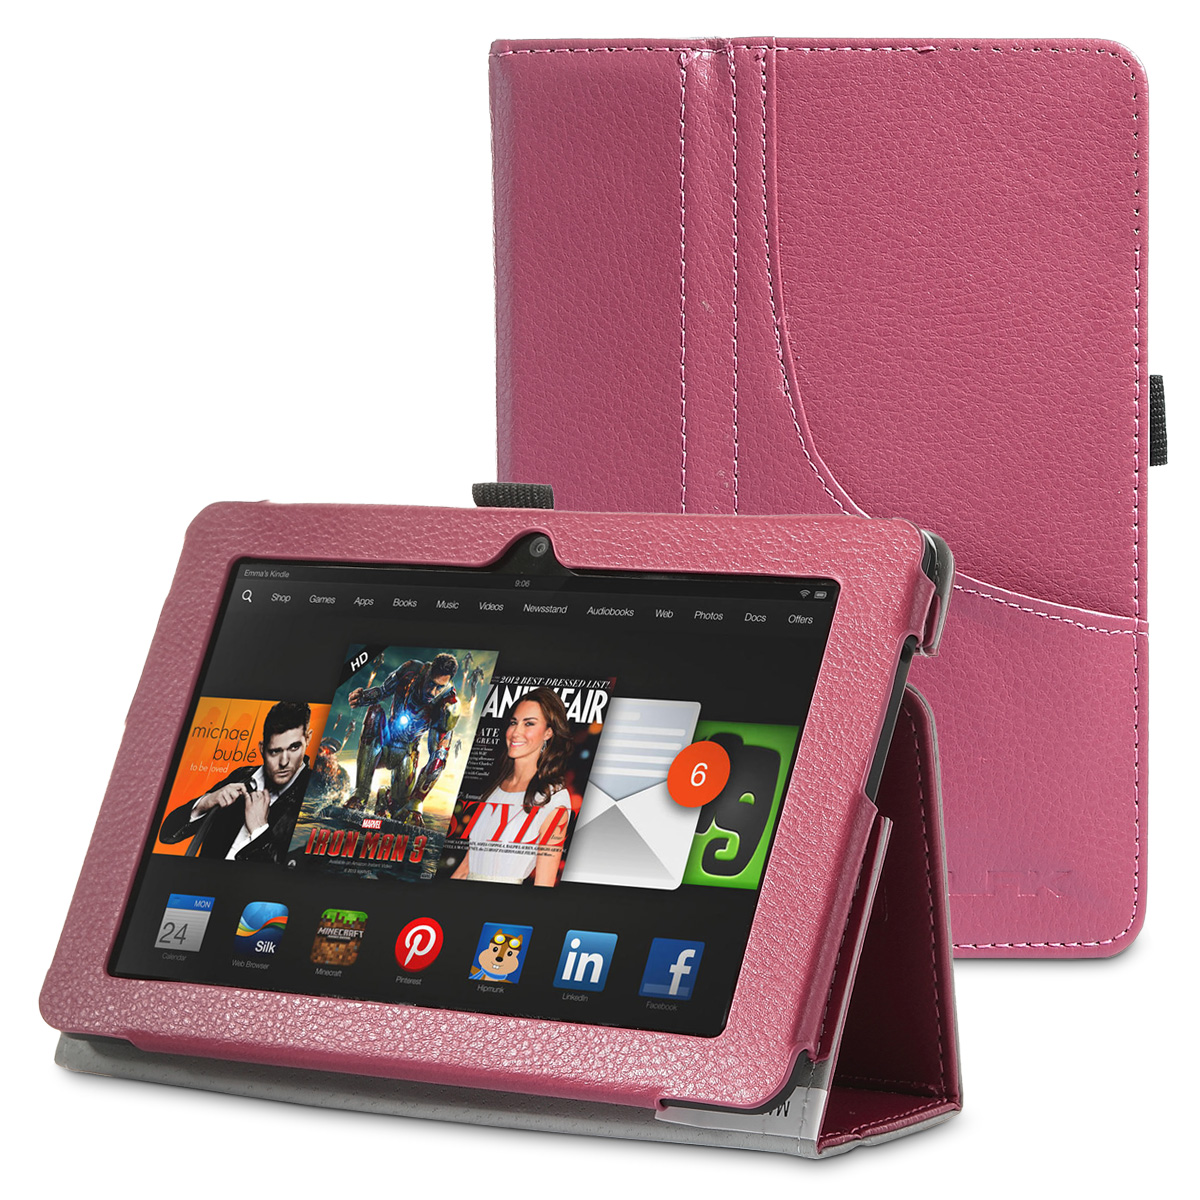 ULAK PU Leather Folio Stand Case Cover for Amazon Kindle Fire HDX 7 Inch 2013 Release with Auto Sleep/Wake Feature, Rose Red